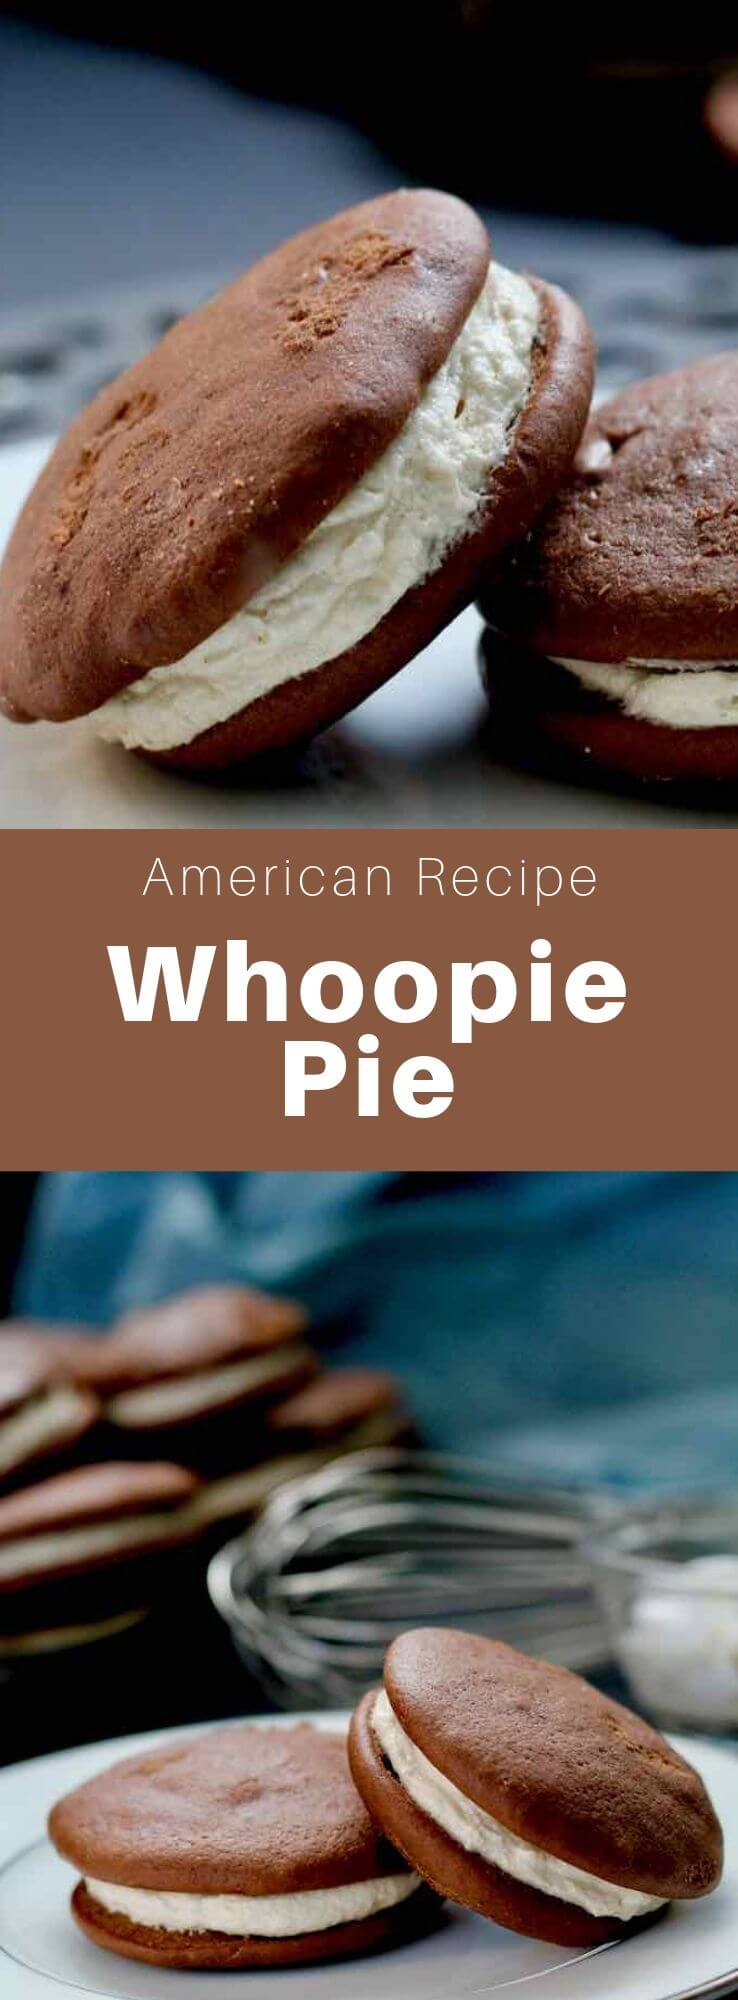 The whoopie pie also called black moon, gob, black-and-white, devil dog, bob, or BFO (Big Fat Oreo) is an American cake consisting of two round pieces of chocolate cake topped with buttercream and marshmallow. #AmericanRecipe #AmericanFood #AmericanCuisine #WorldCuisine #196flavors